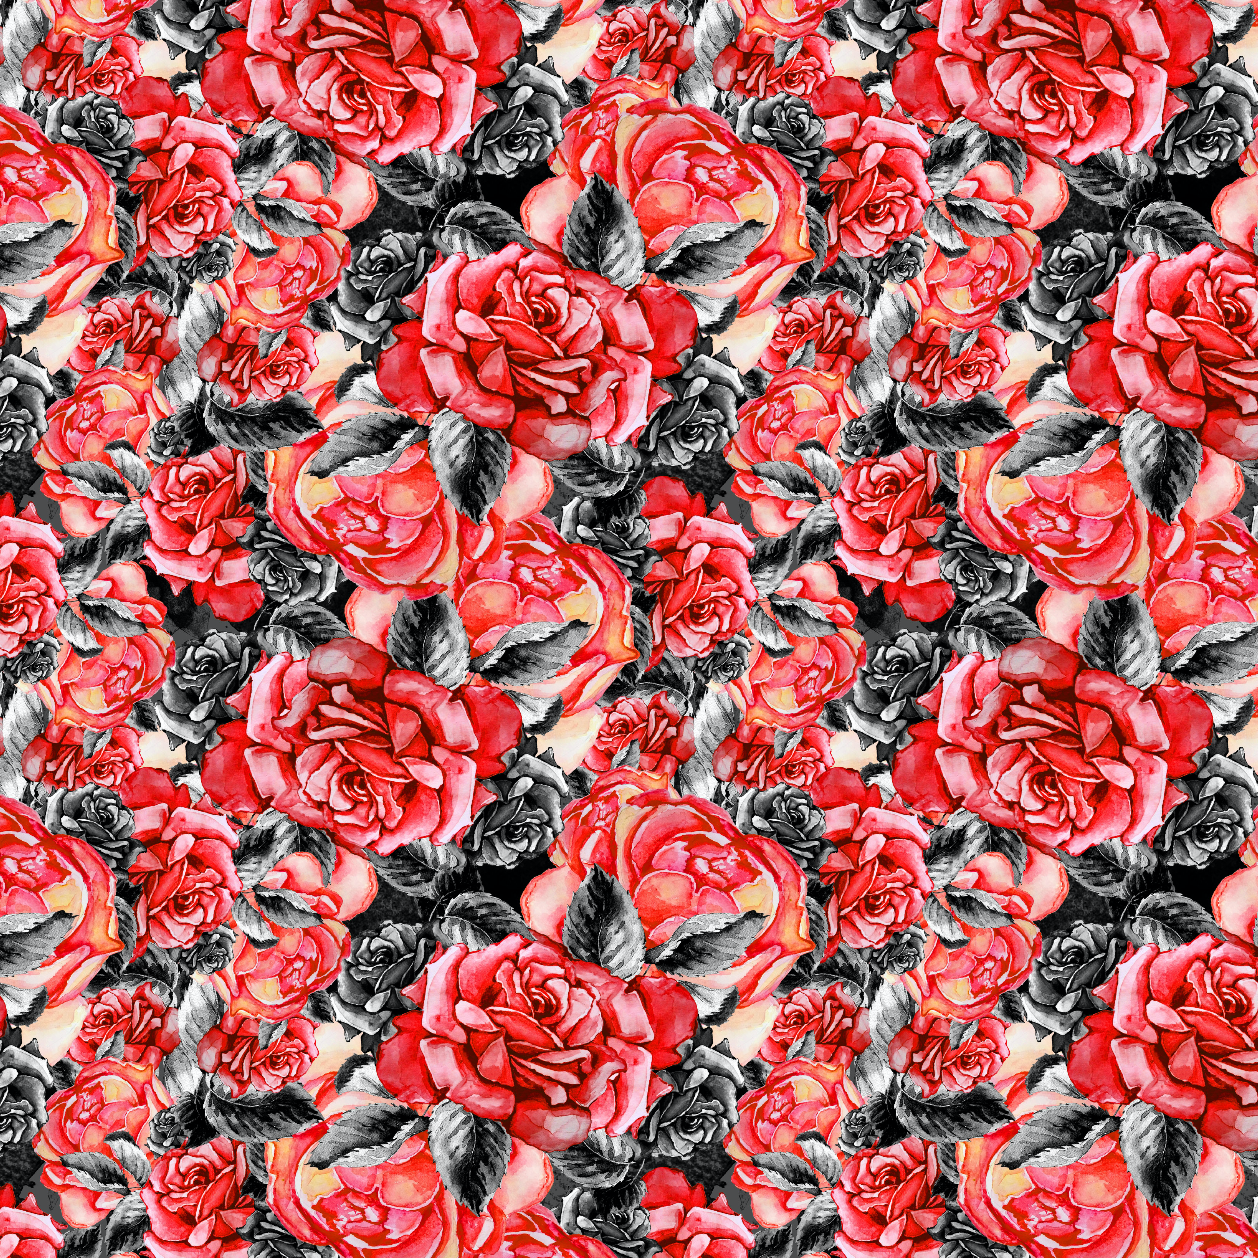 IN STOCK - Marilyn Monroe Roses - WOVEN COTTON